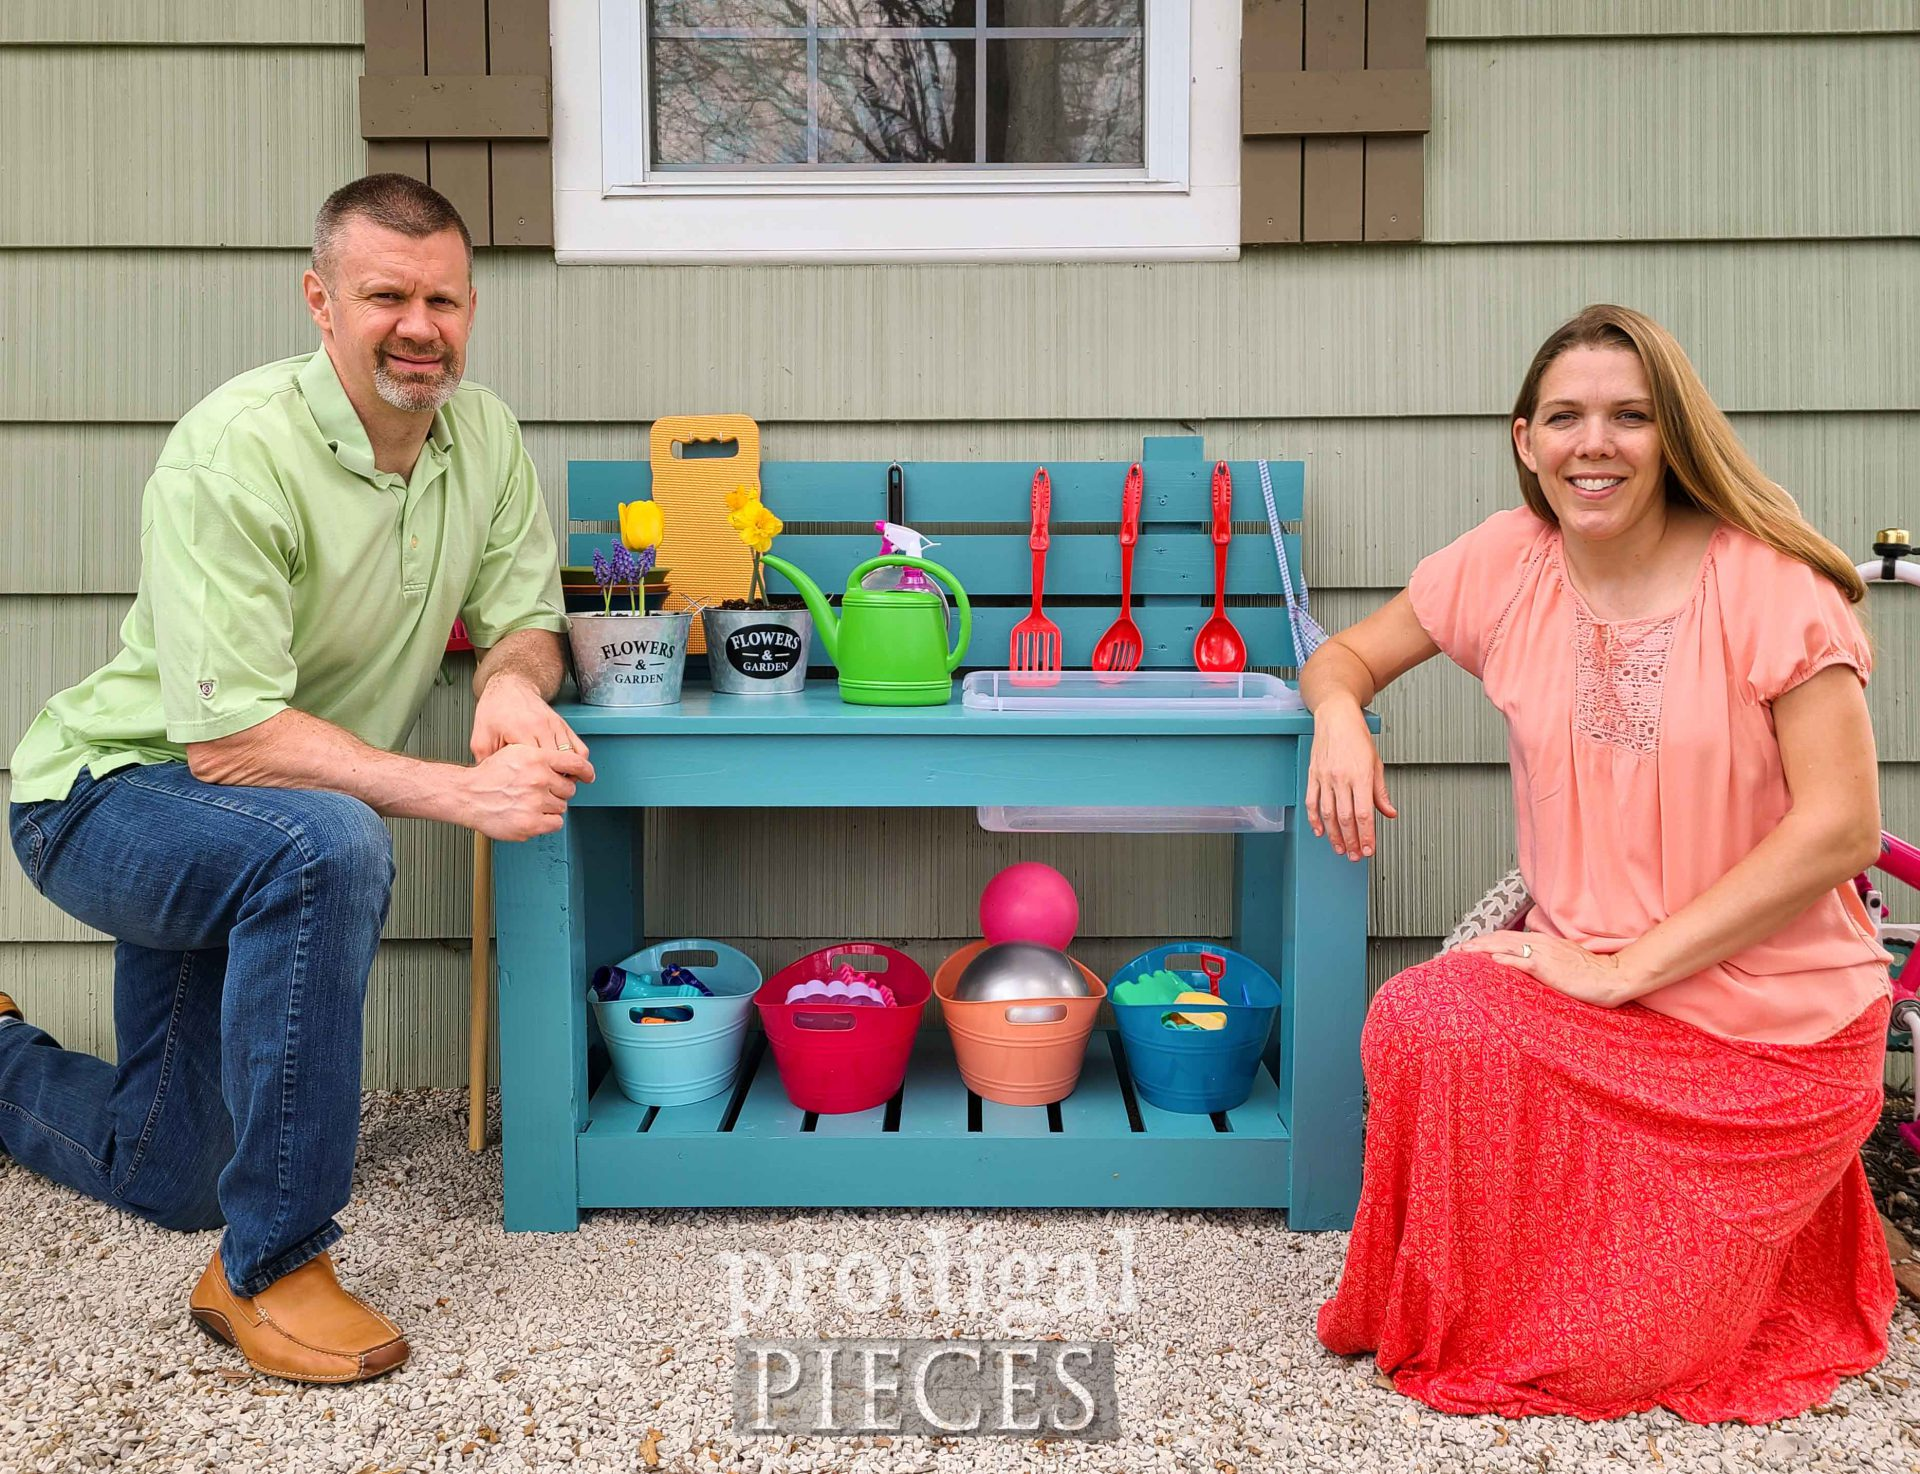 JC & Larissa of Prodigal Pieces | prodigalpieces.com #prodigalpieces #family #fun #kids #toys